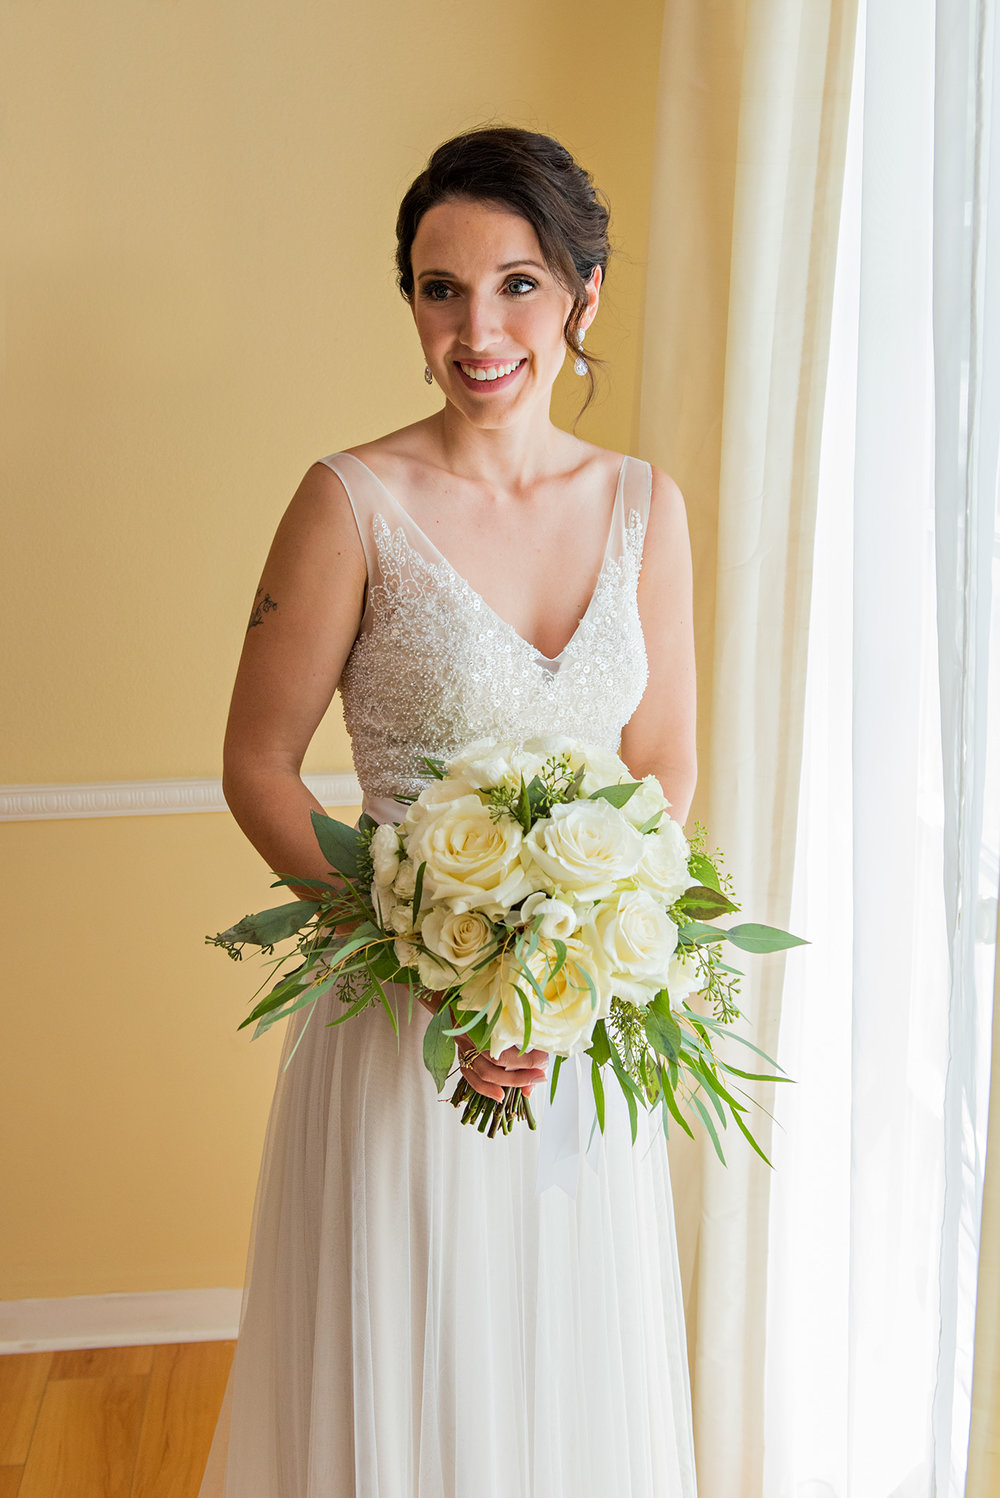 bride in wedding gown. litchfield inn wedding. connecticut wedding photographer